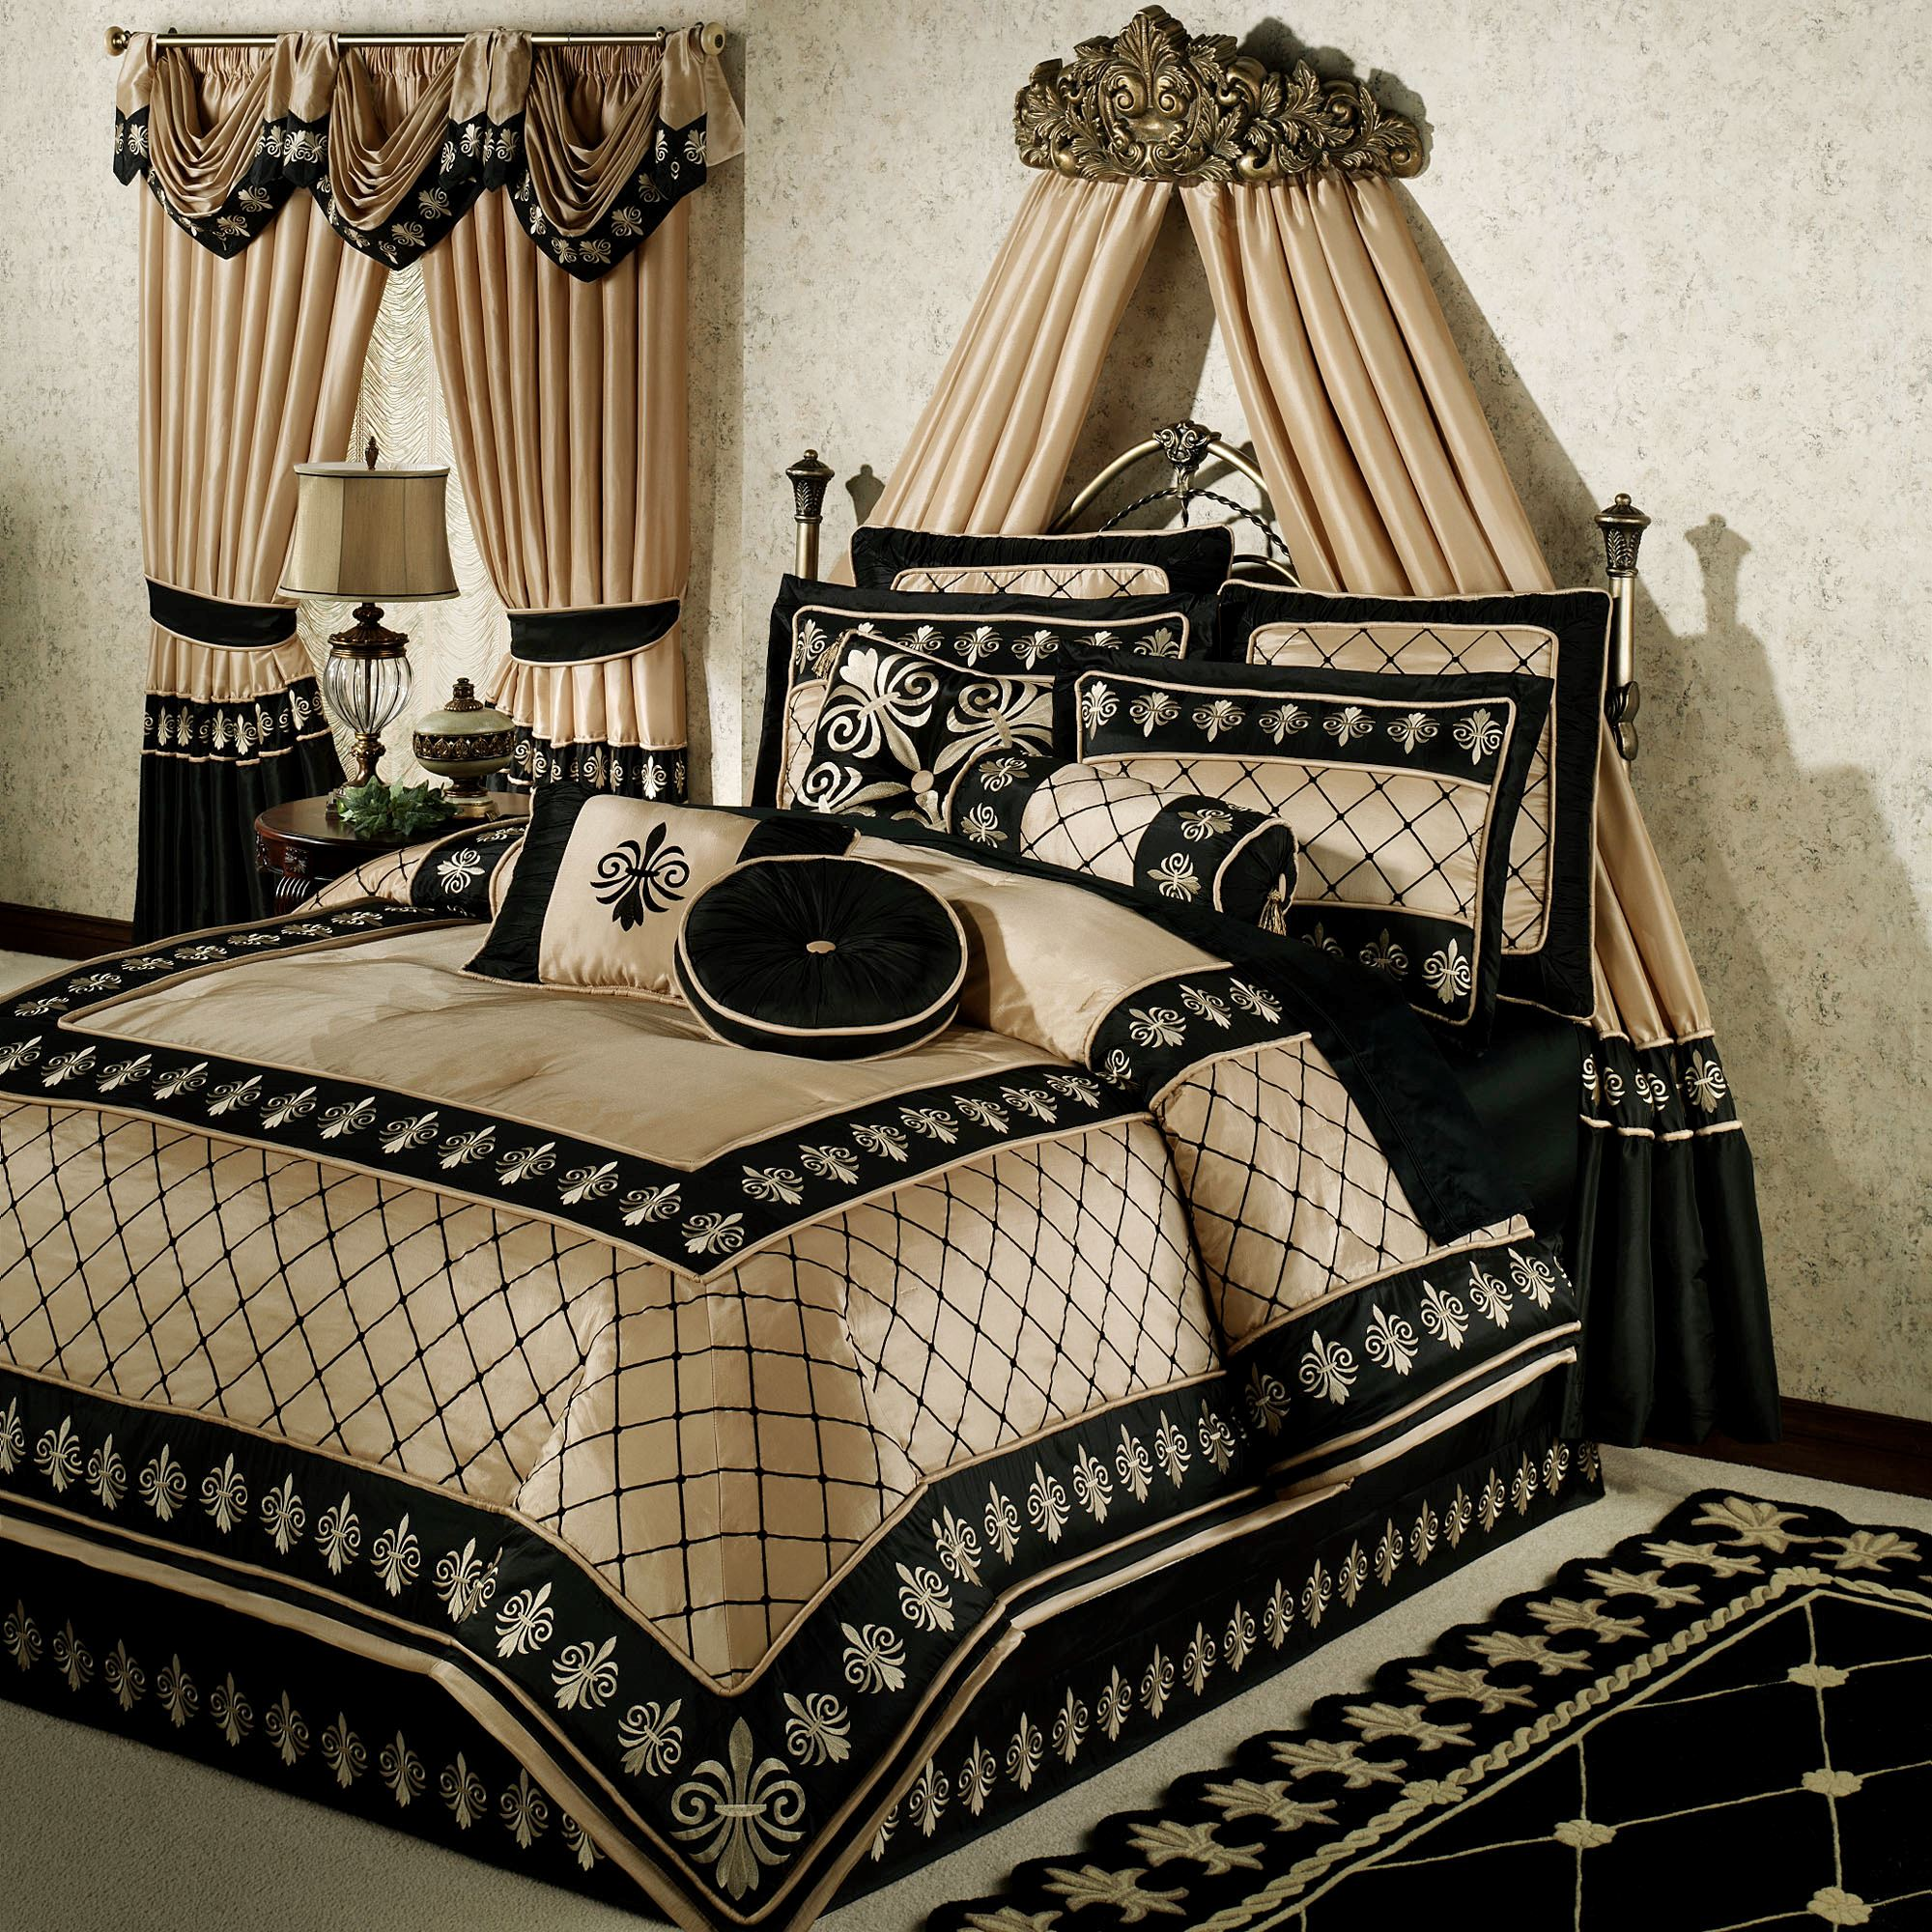 Onyx Empire Comforter Set & New Traditional Comforters | Touch of Class